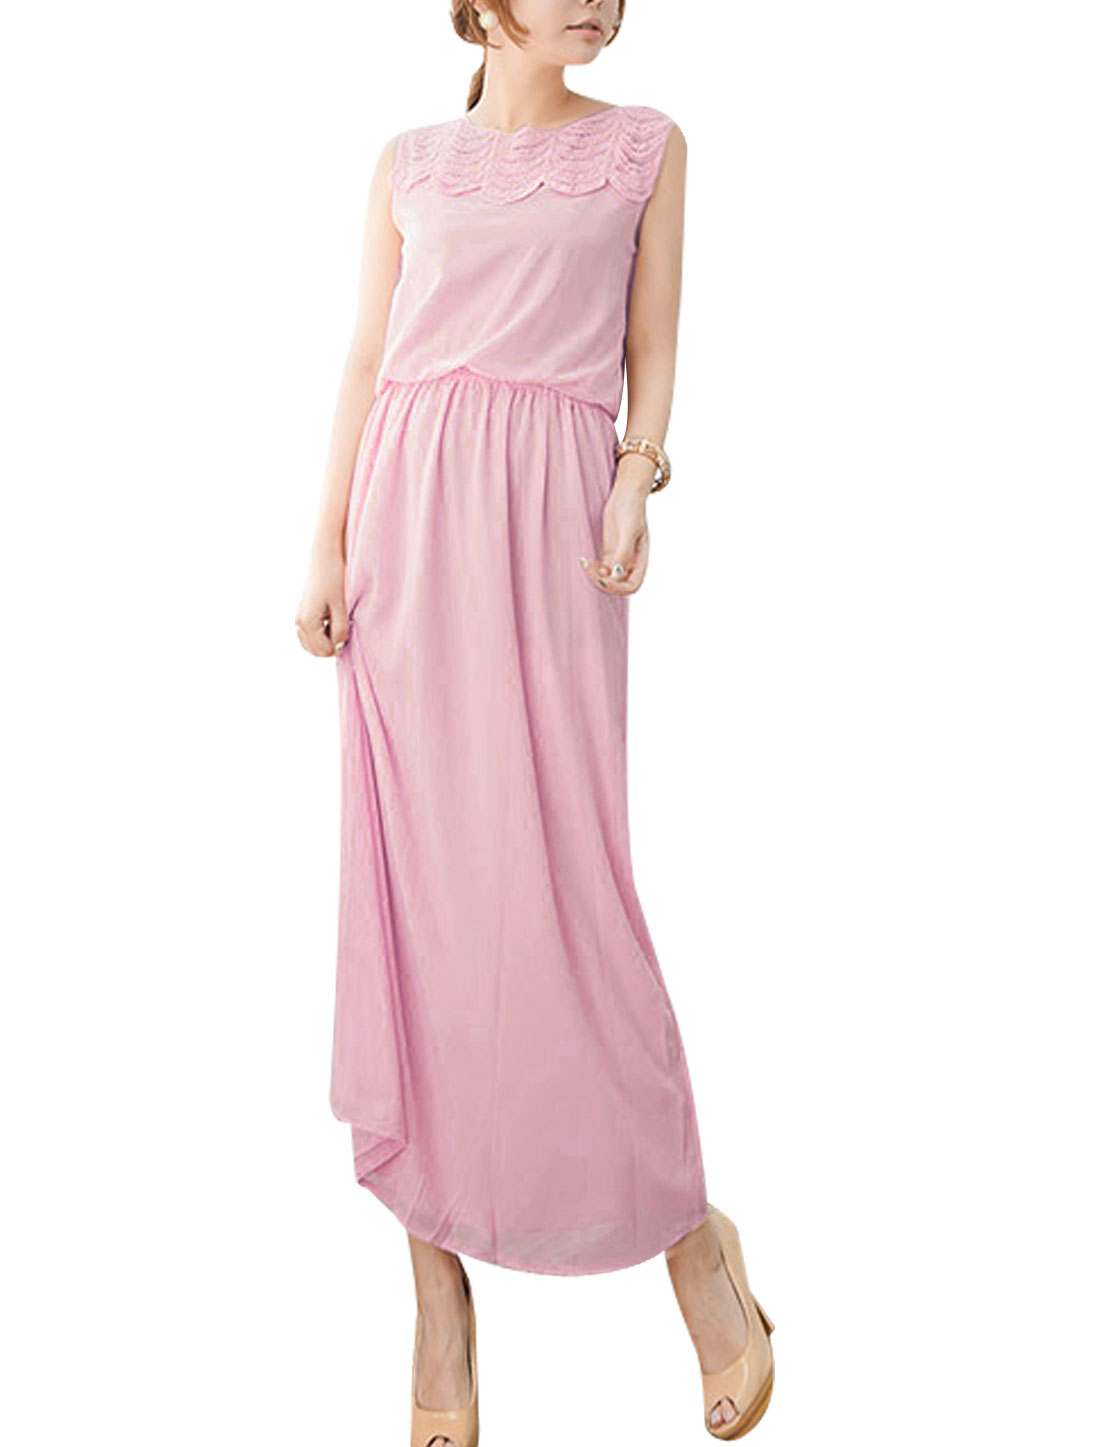 Round Neck Sleeveless Inner Lining Maxi Chiffon Dress Pink XS for Ladies